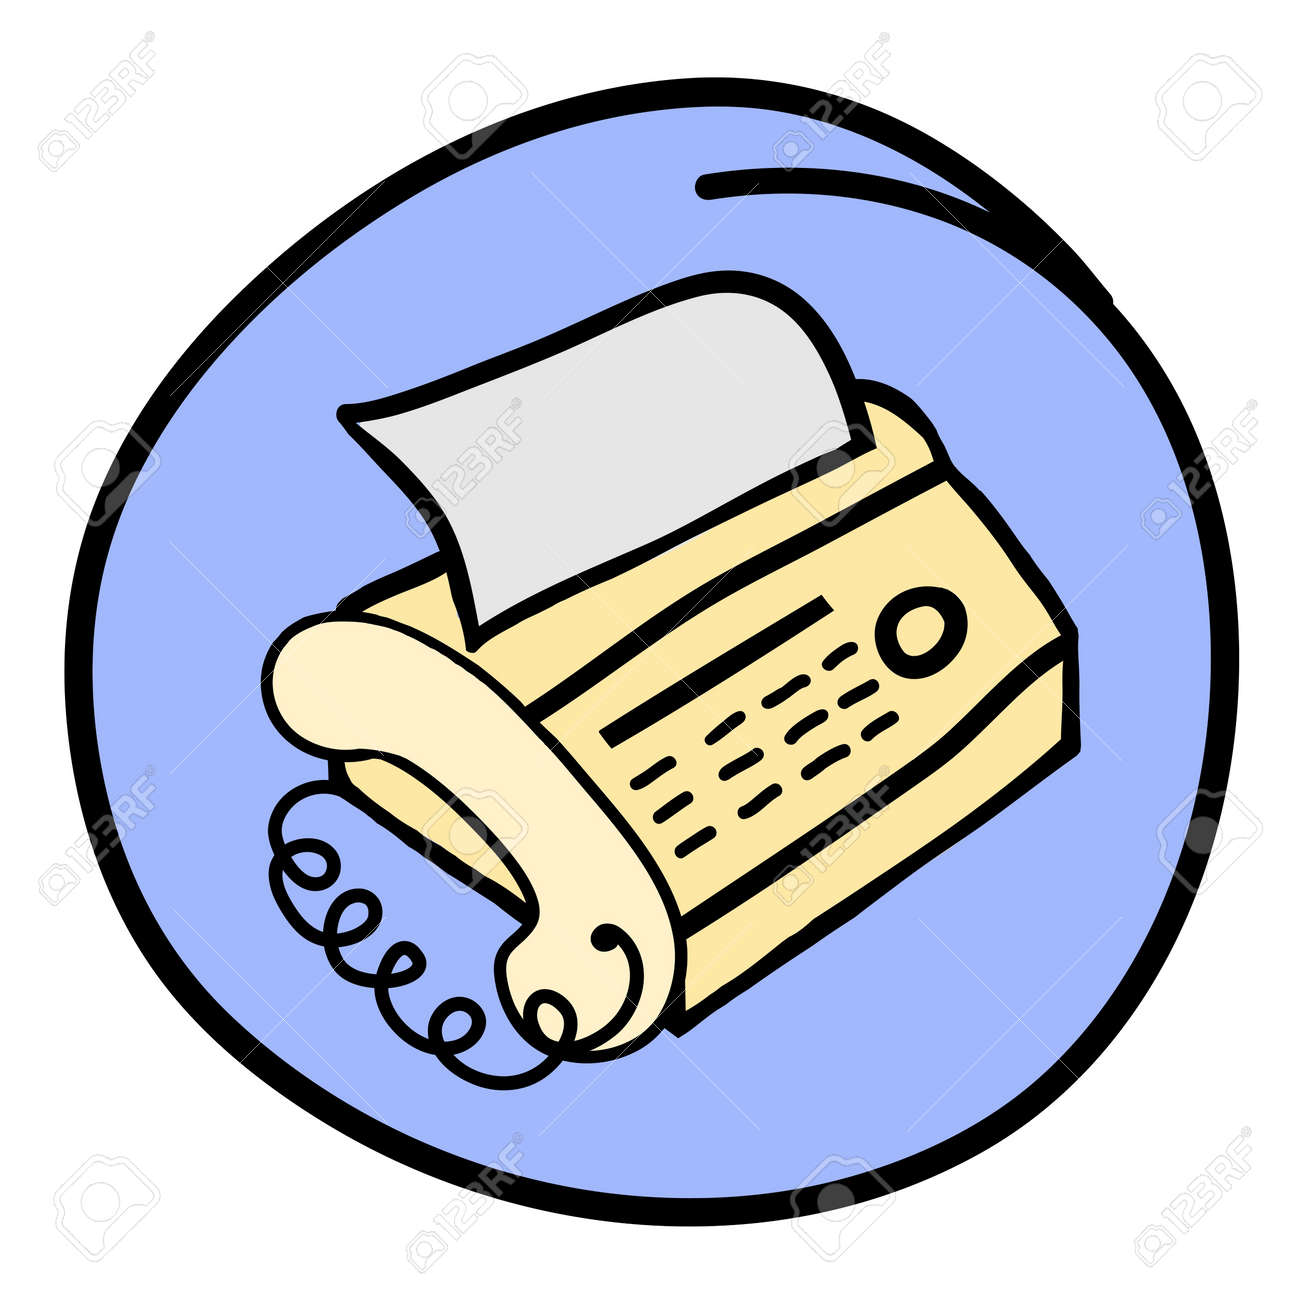 Office Supply, A Cartoon Illustration Of Fax Machine With A ...